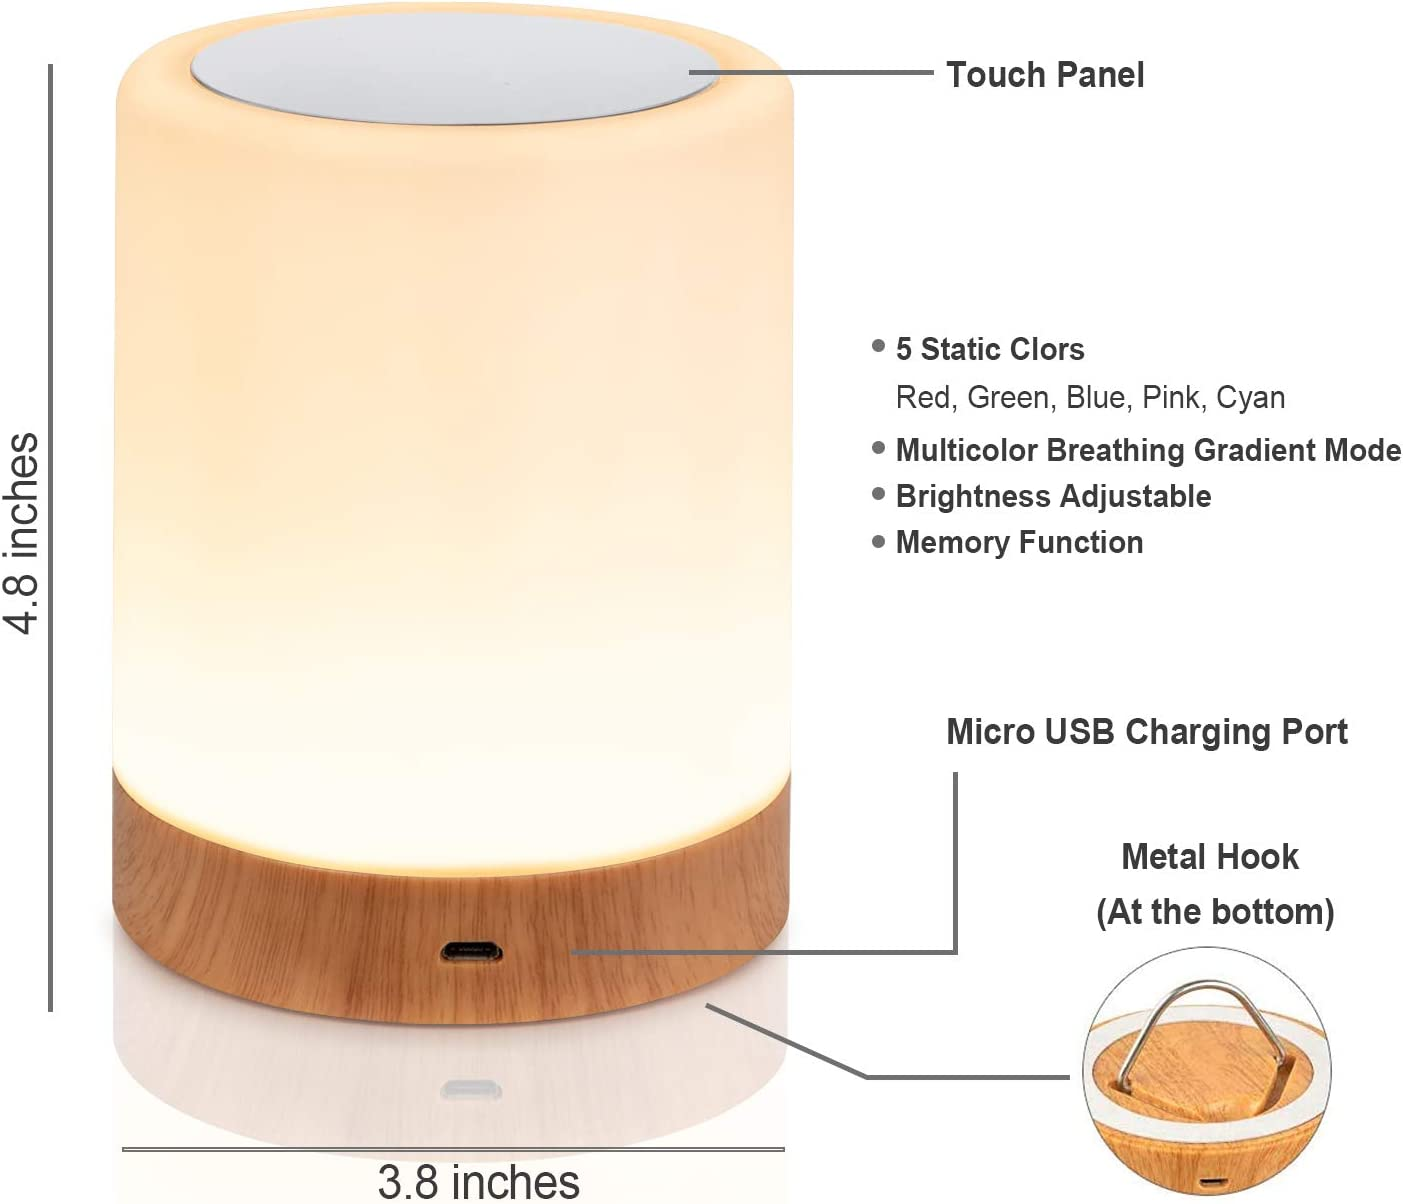 360 Degrees Light Touch Night Light Rechargeable Battery Powered Table Lamp Dimmable with Metal Hook Portable Warm White Light Bedside Lamp with RGB Color Changing Light